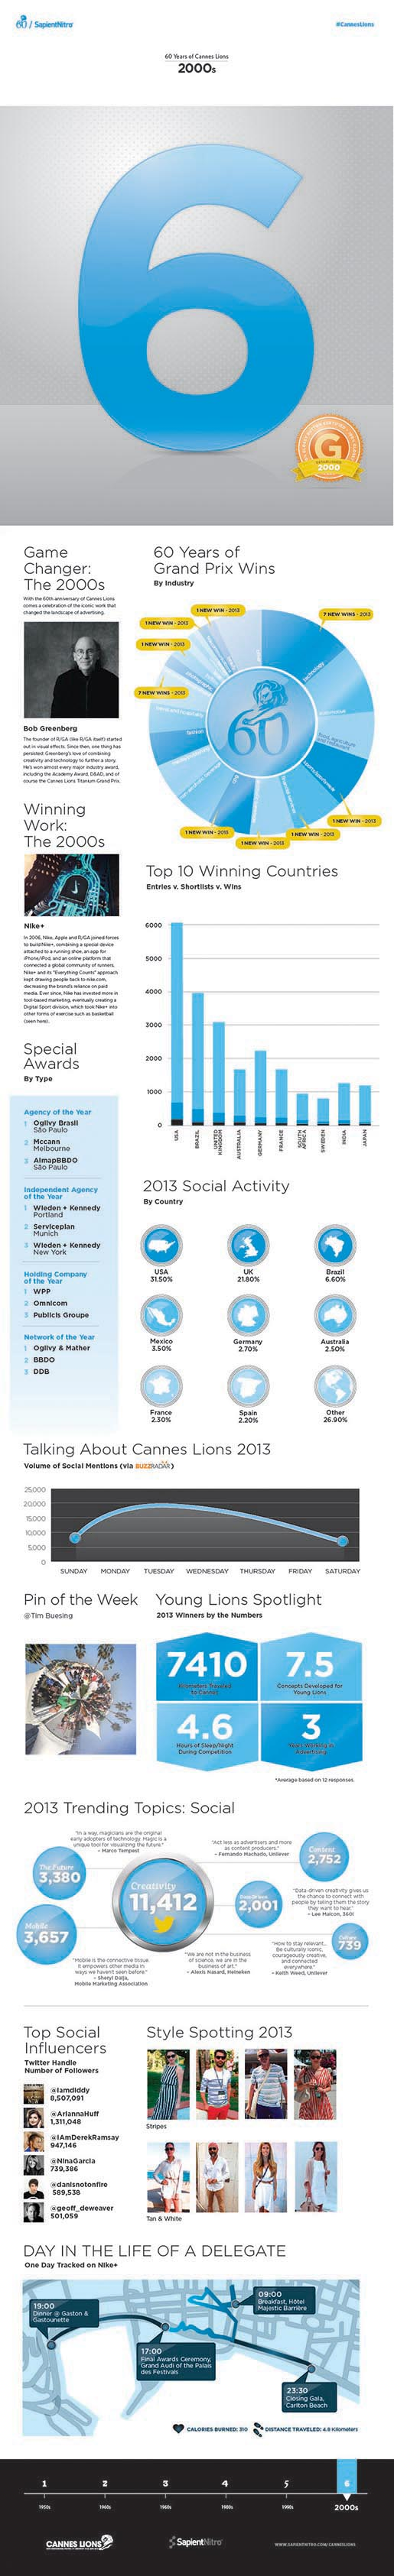 Cannes Lion Infographic 2000s